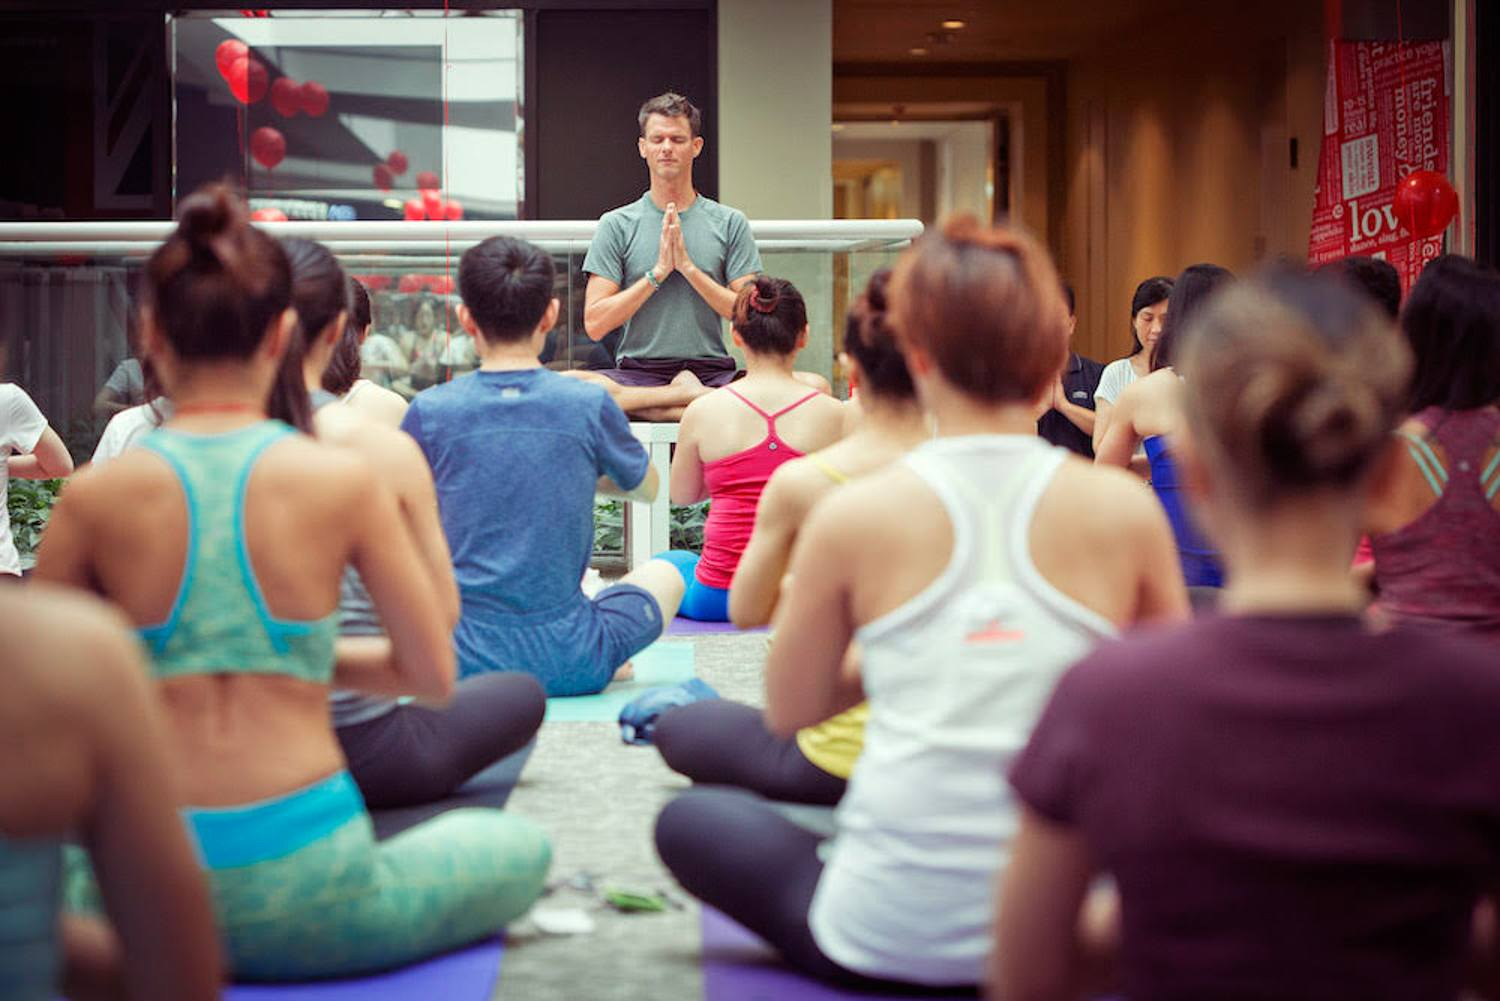 Stephen leading a yoga class in Shanghai.